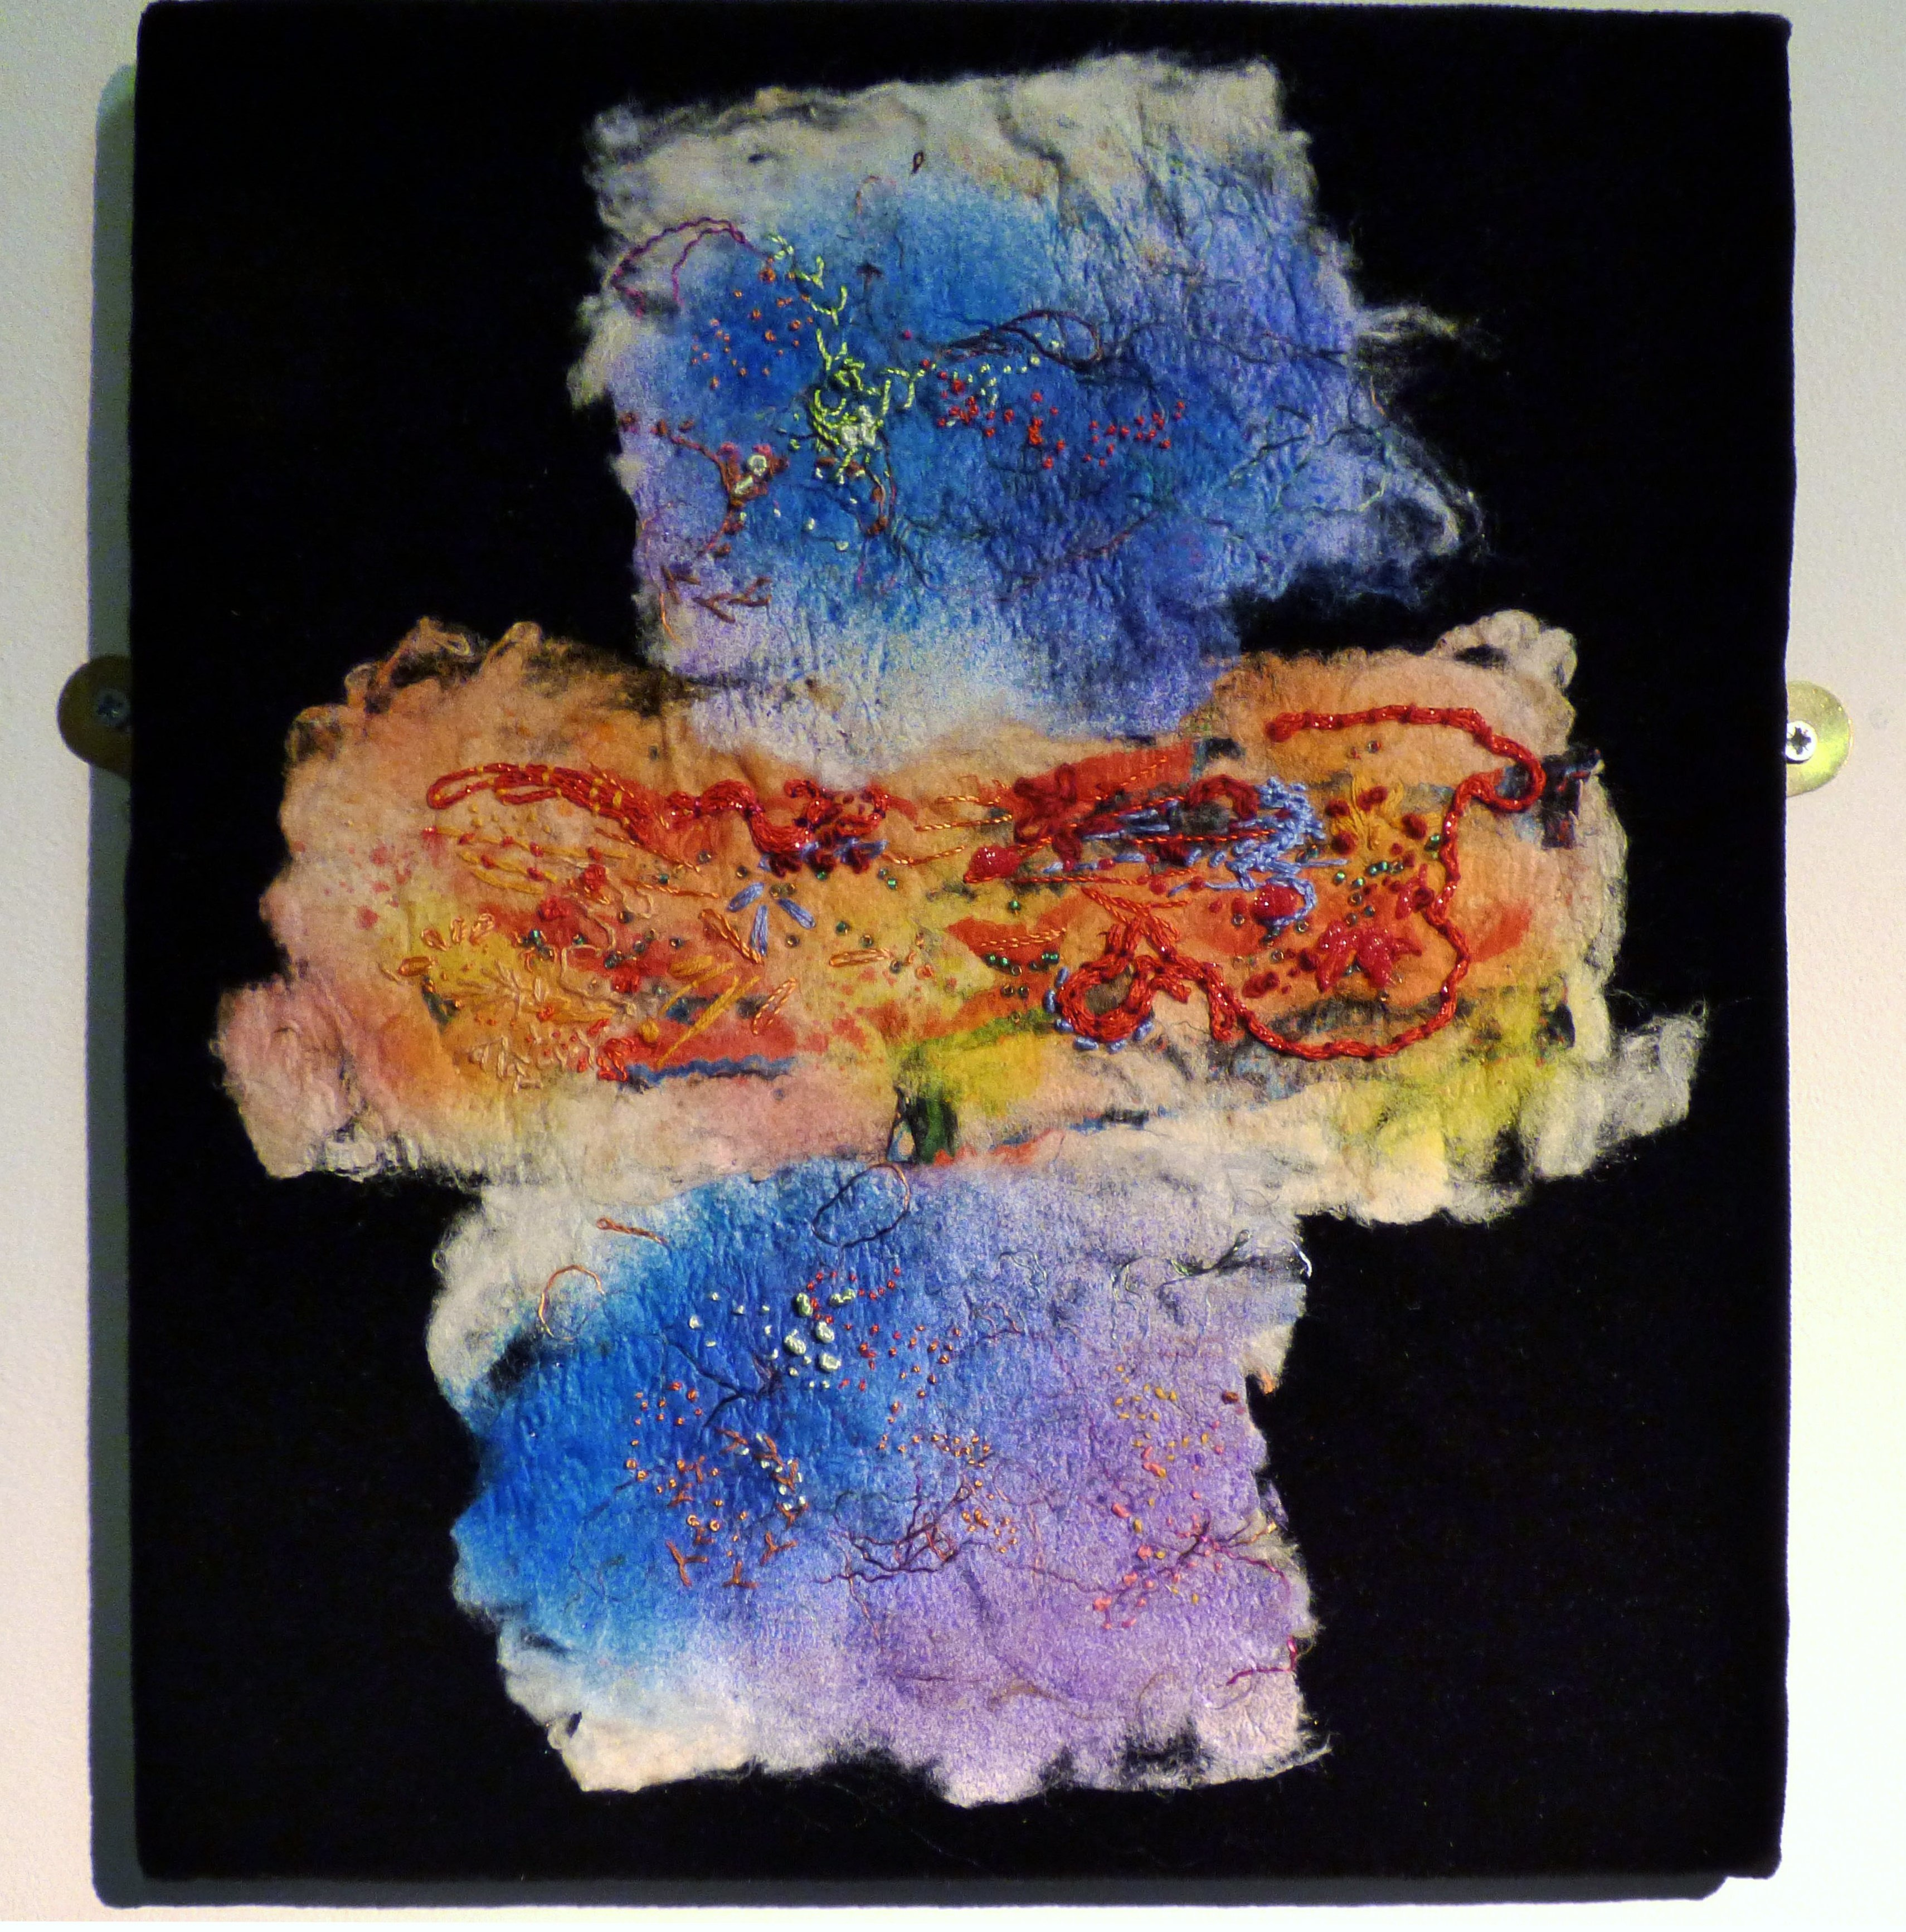 SKIES by Anne Tavener, mixed media using silk paper and stitch